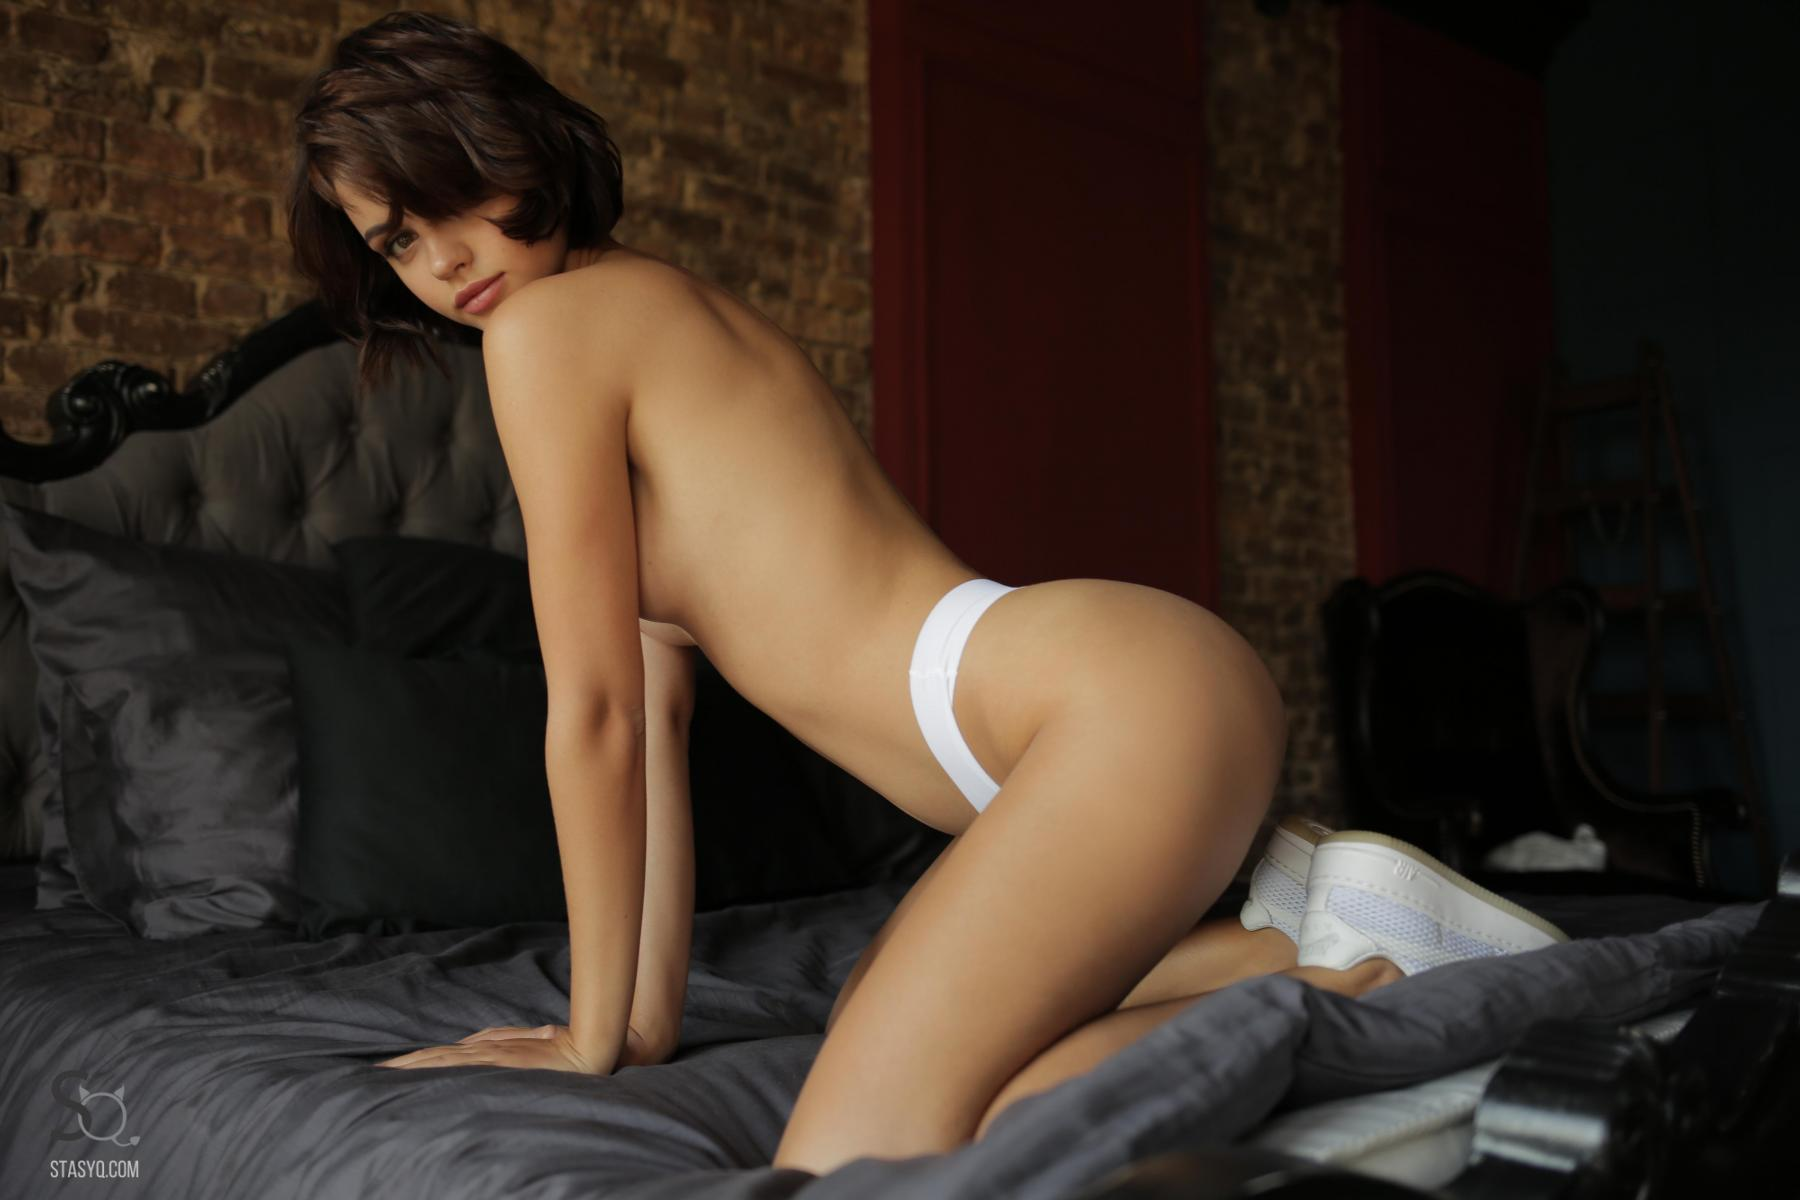 NatellaQ posing on the bed in just her white panties-StasyQ